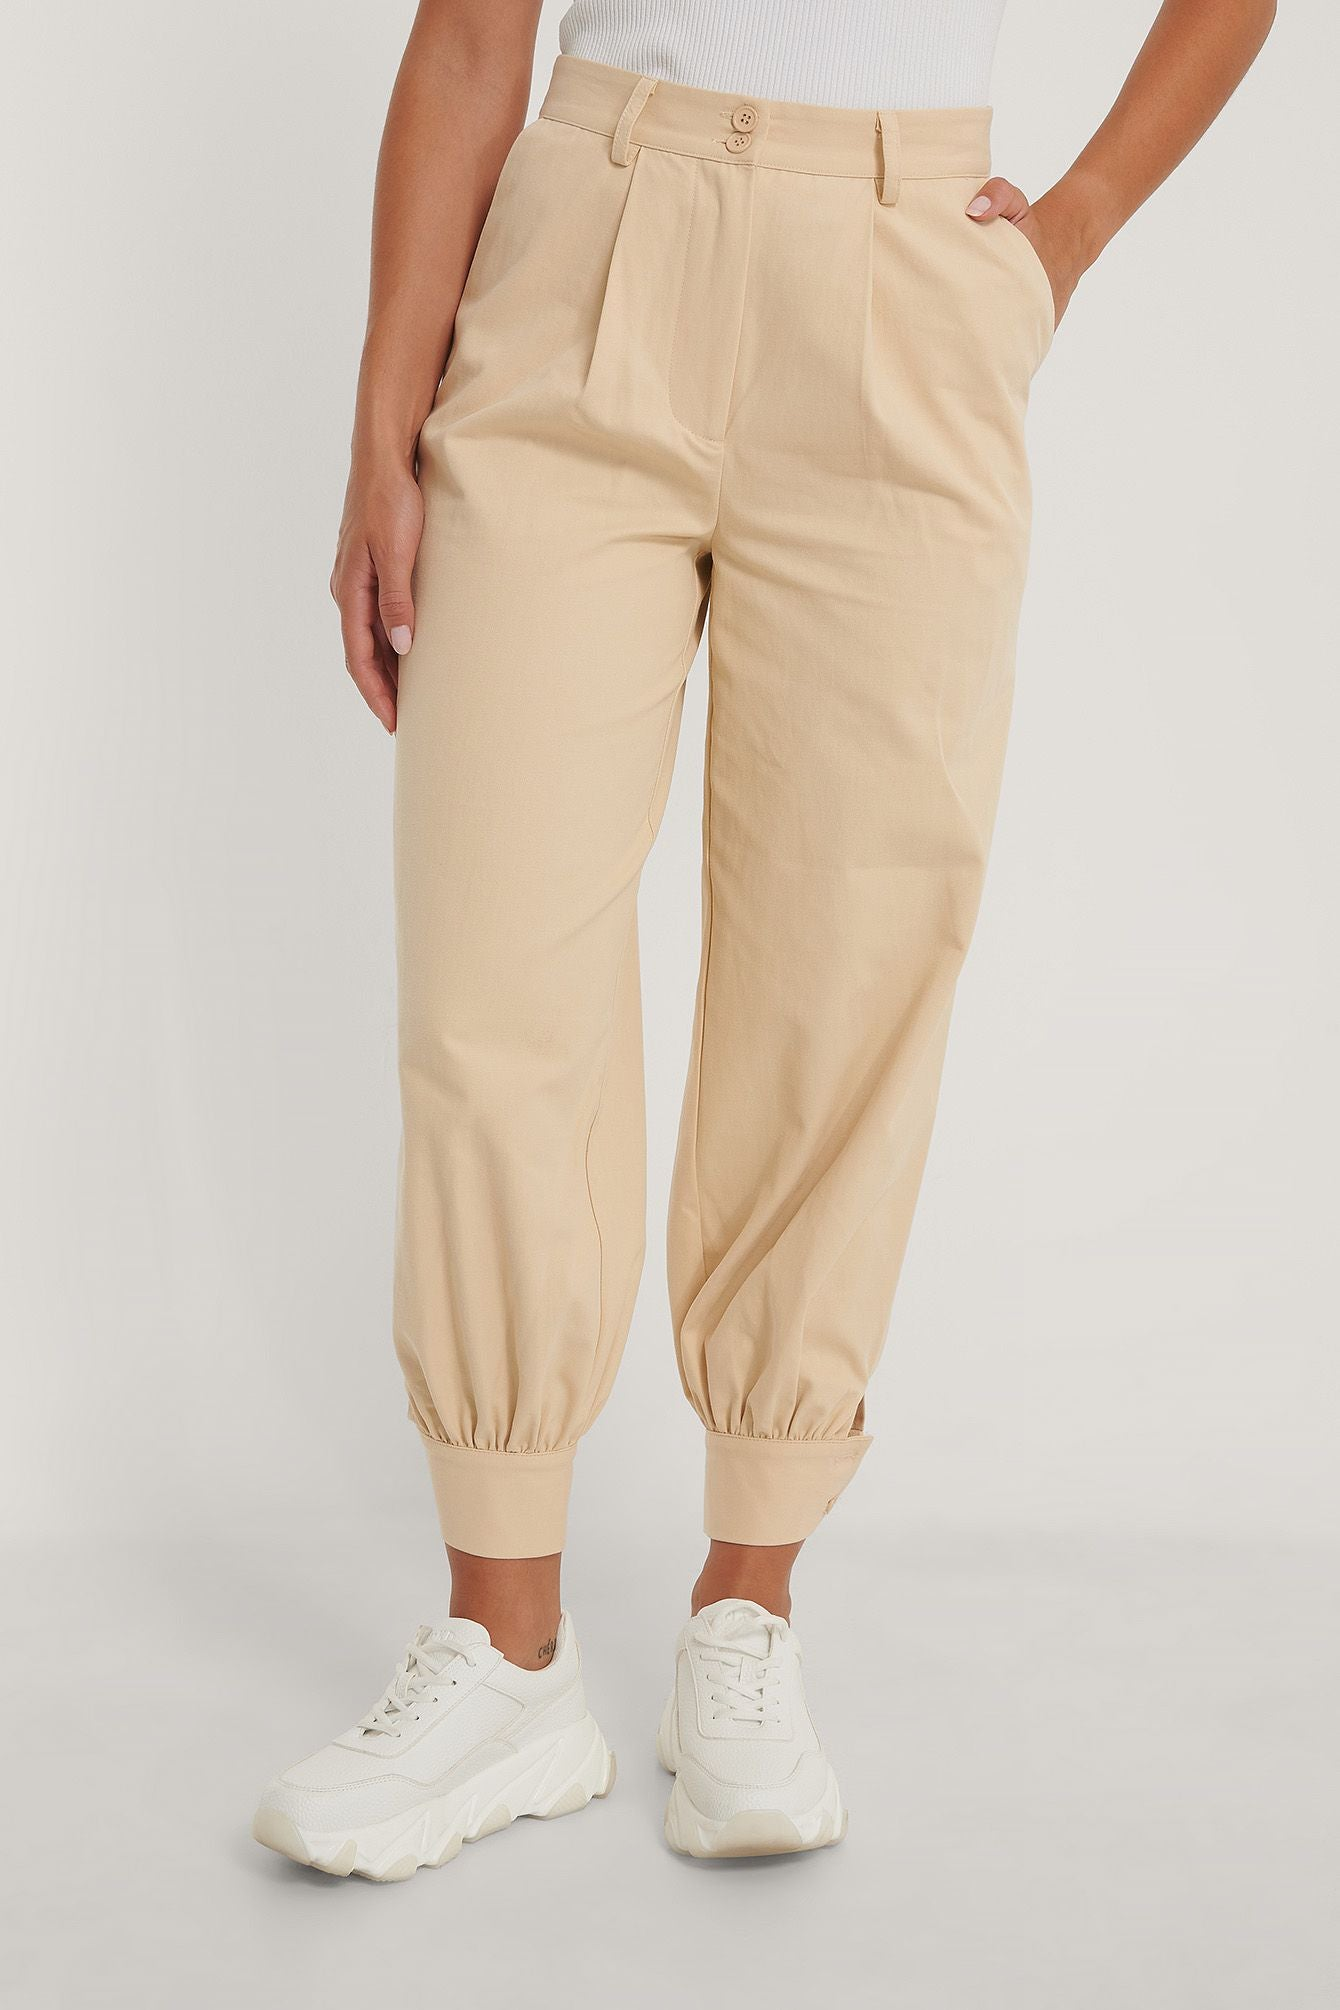 Cocoon Oversized Pant